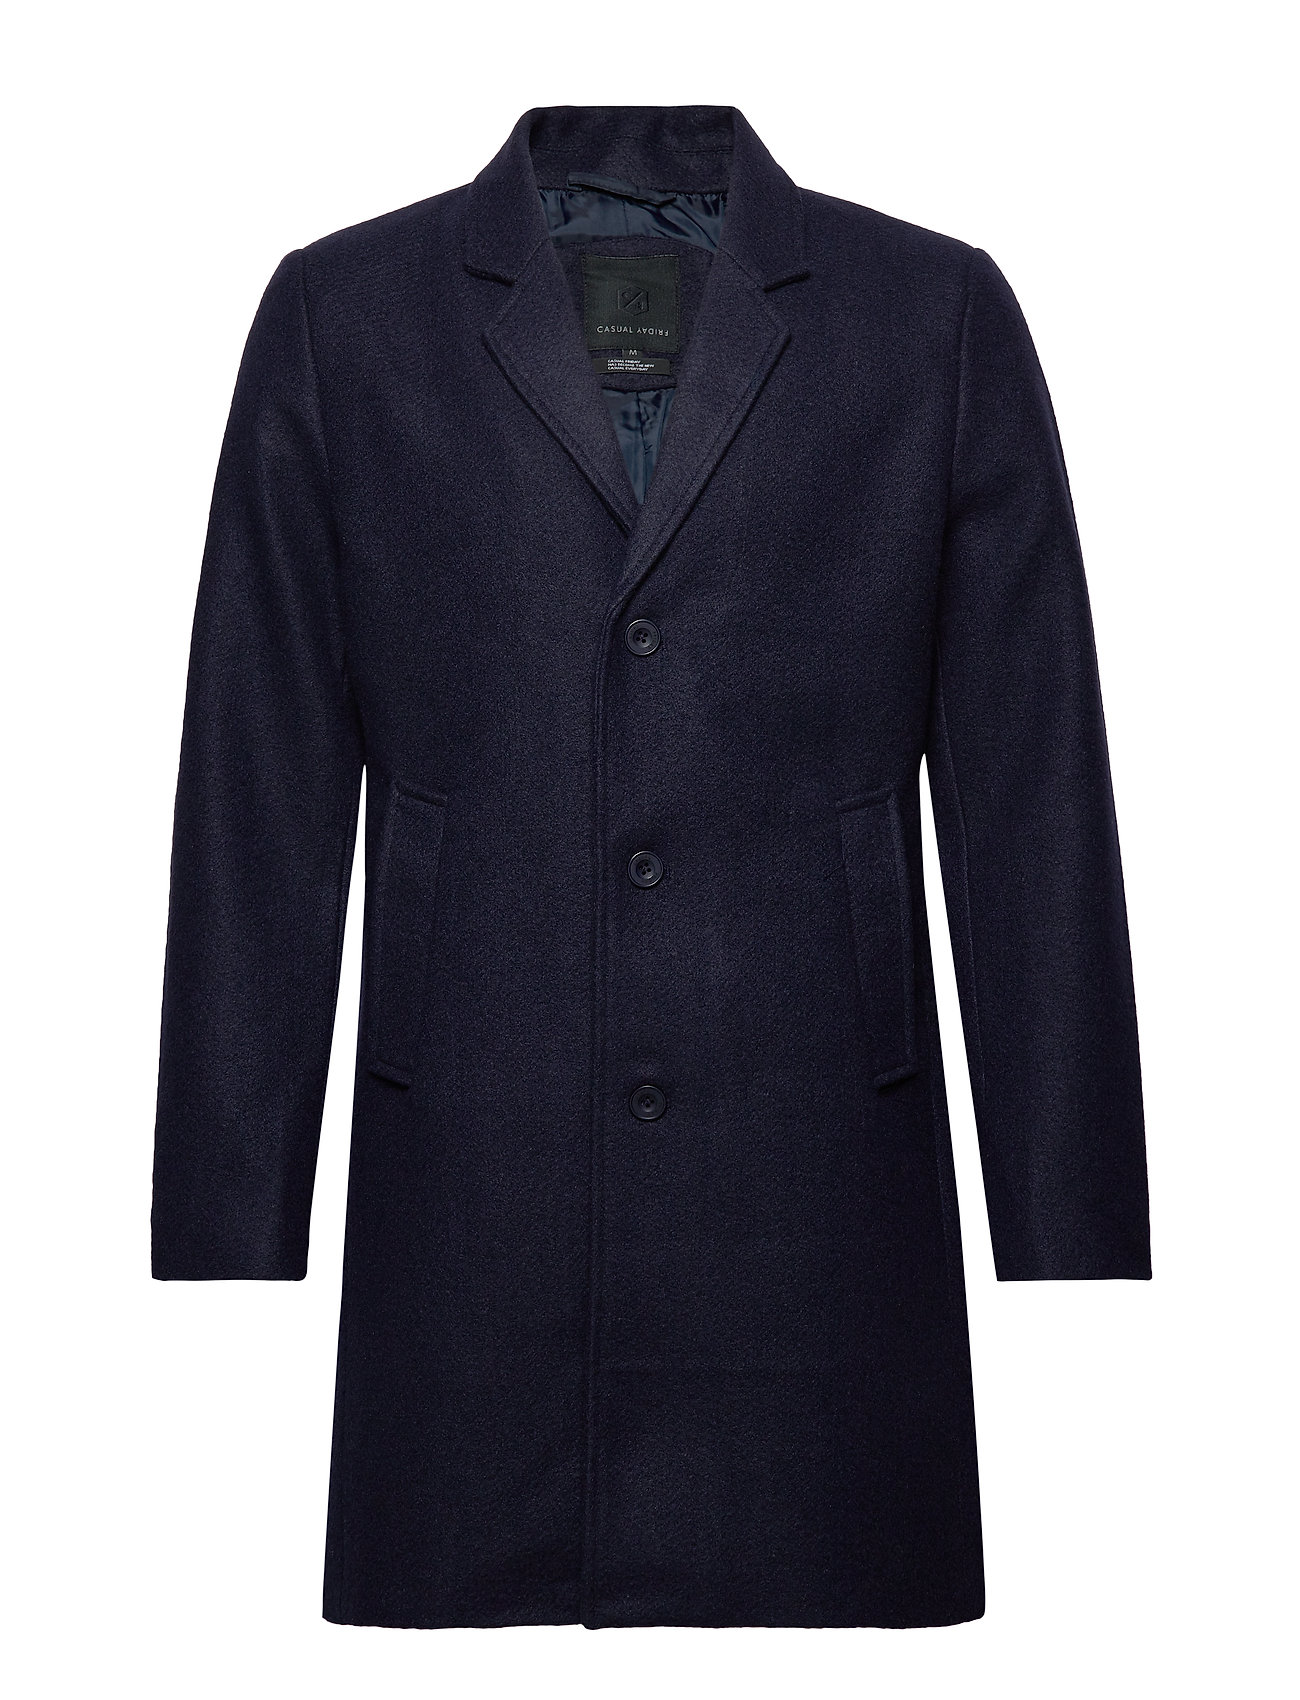 Casual Friday Outerwear - NAVY